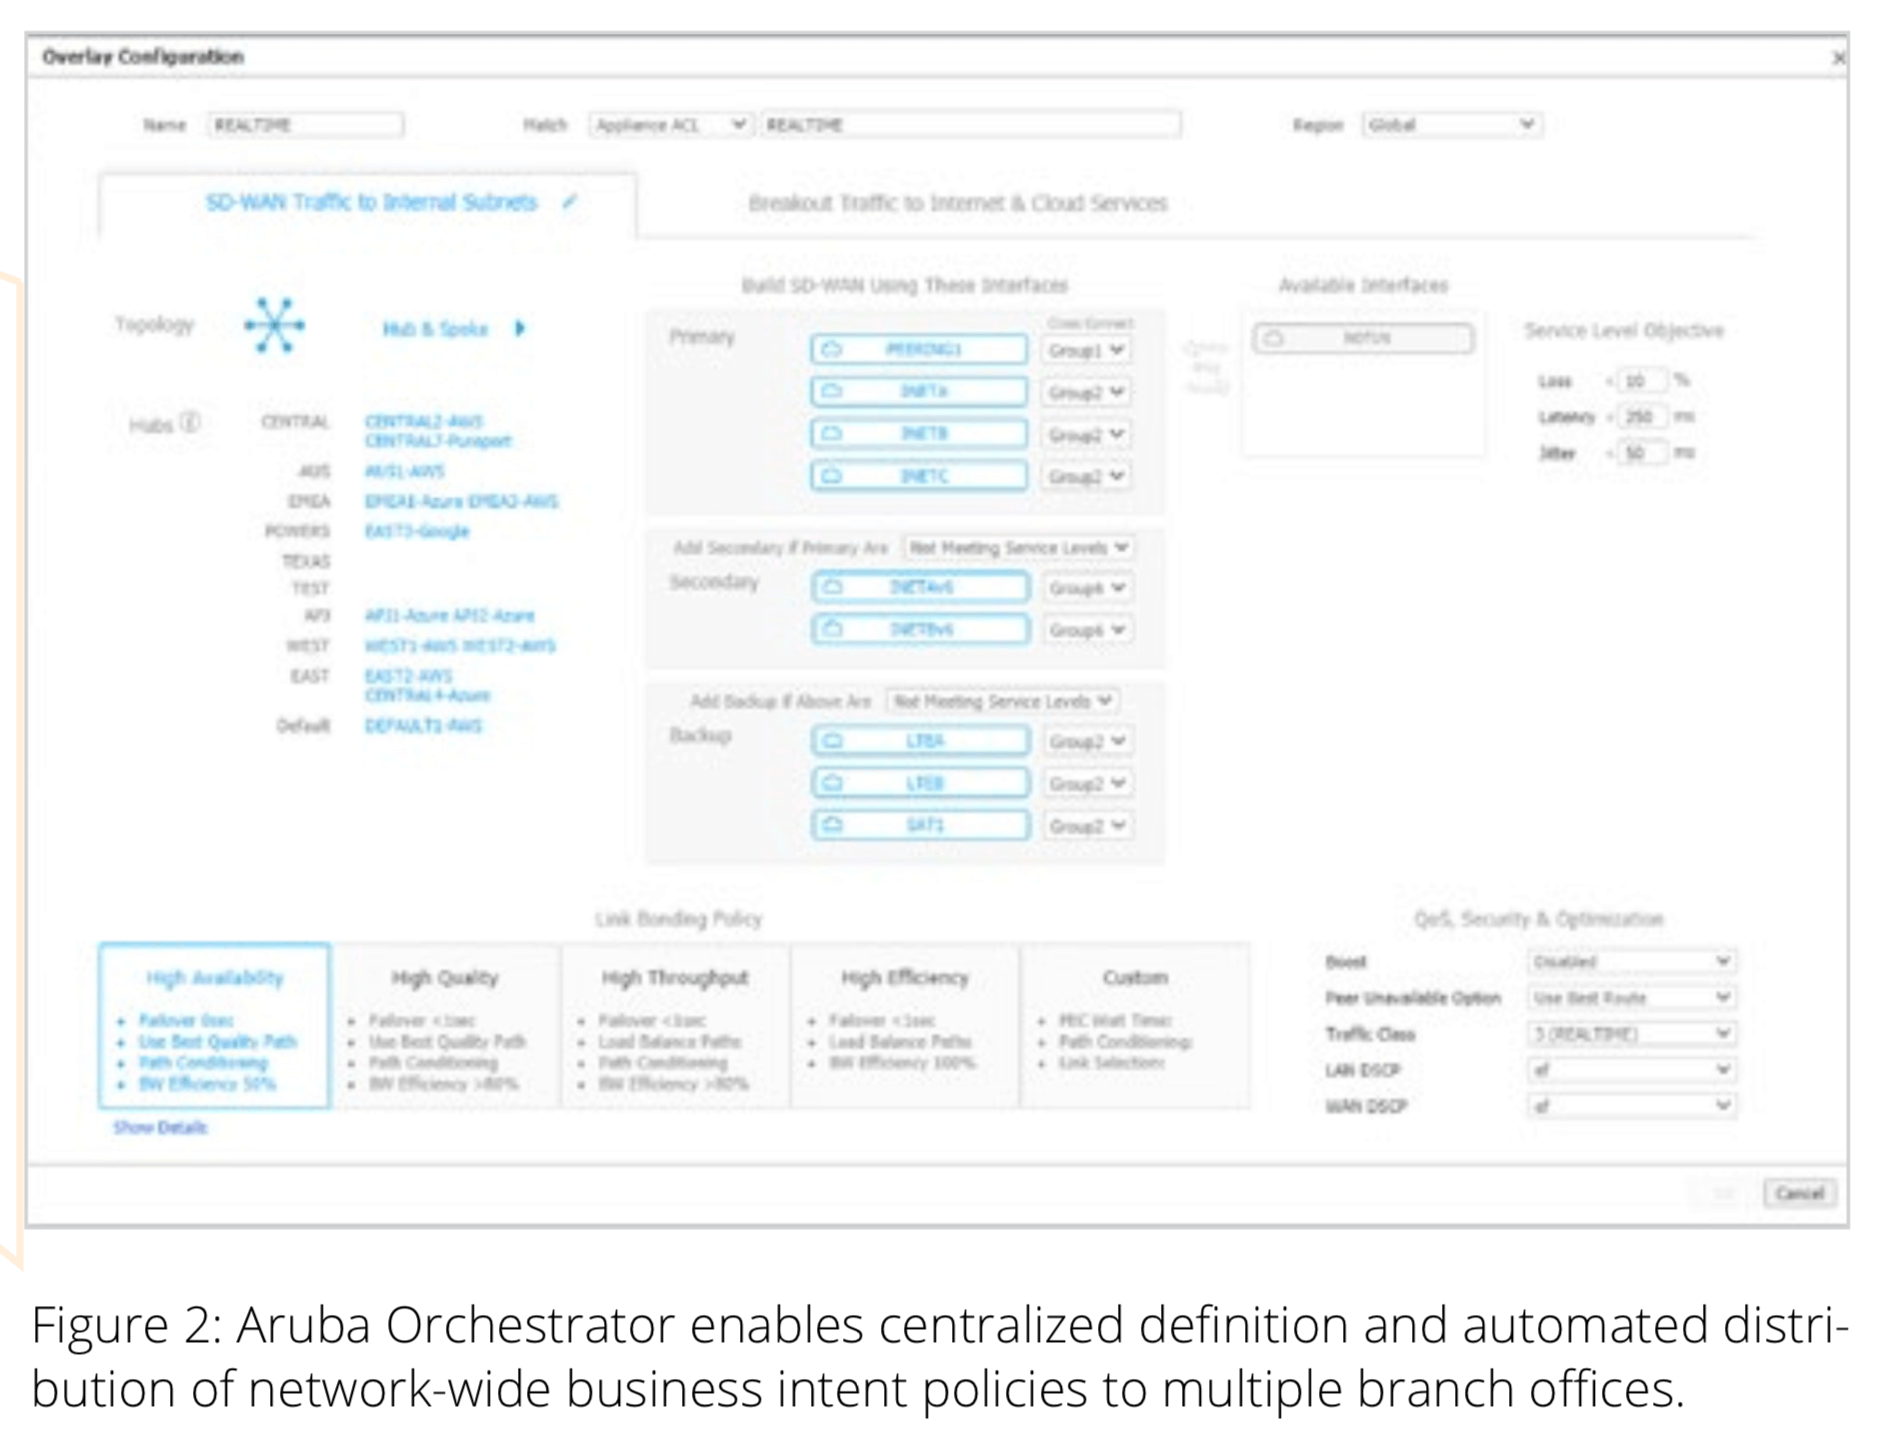 Figure 2: Aruba Orchestrator enables centralized definition and automated distribution of network-wide business intent policies to multiple branch offices.